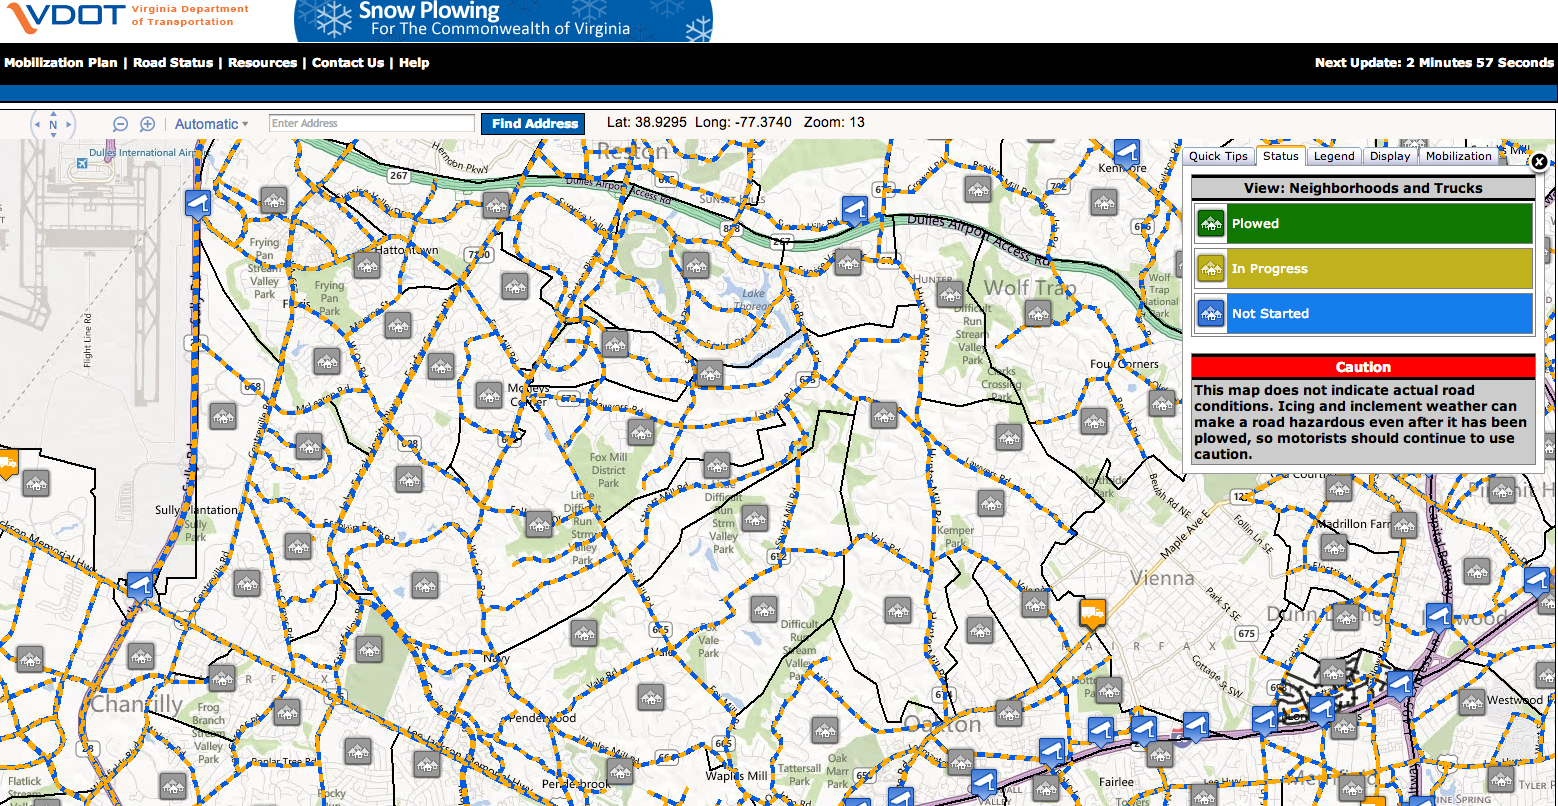 Vdot Snow Plow Map Track VDOT Snow Plowing Efforts | Fairfax County Emergency Information